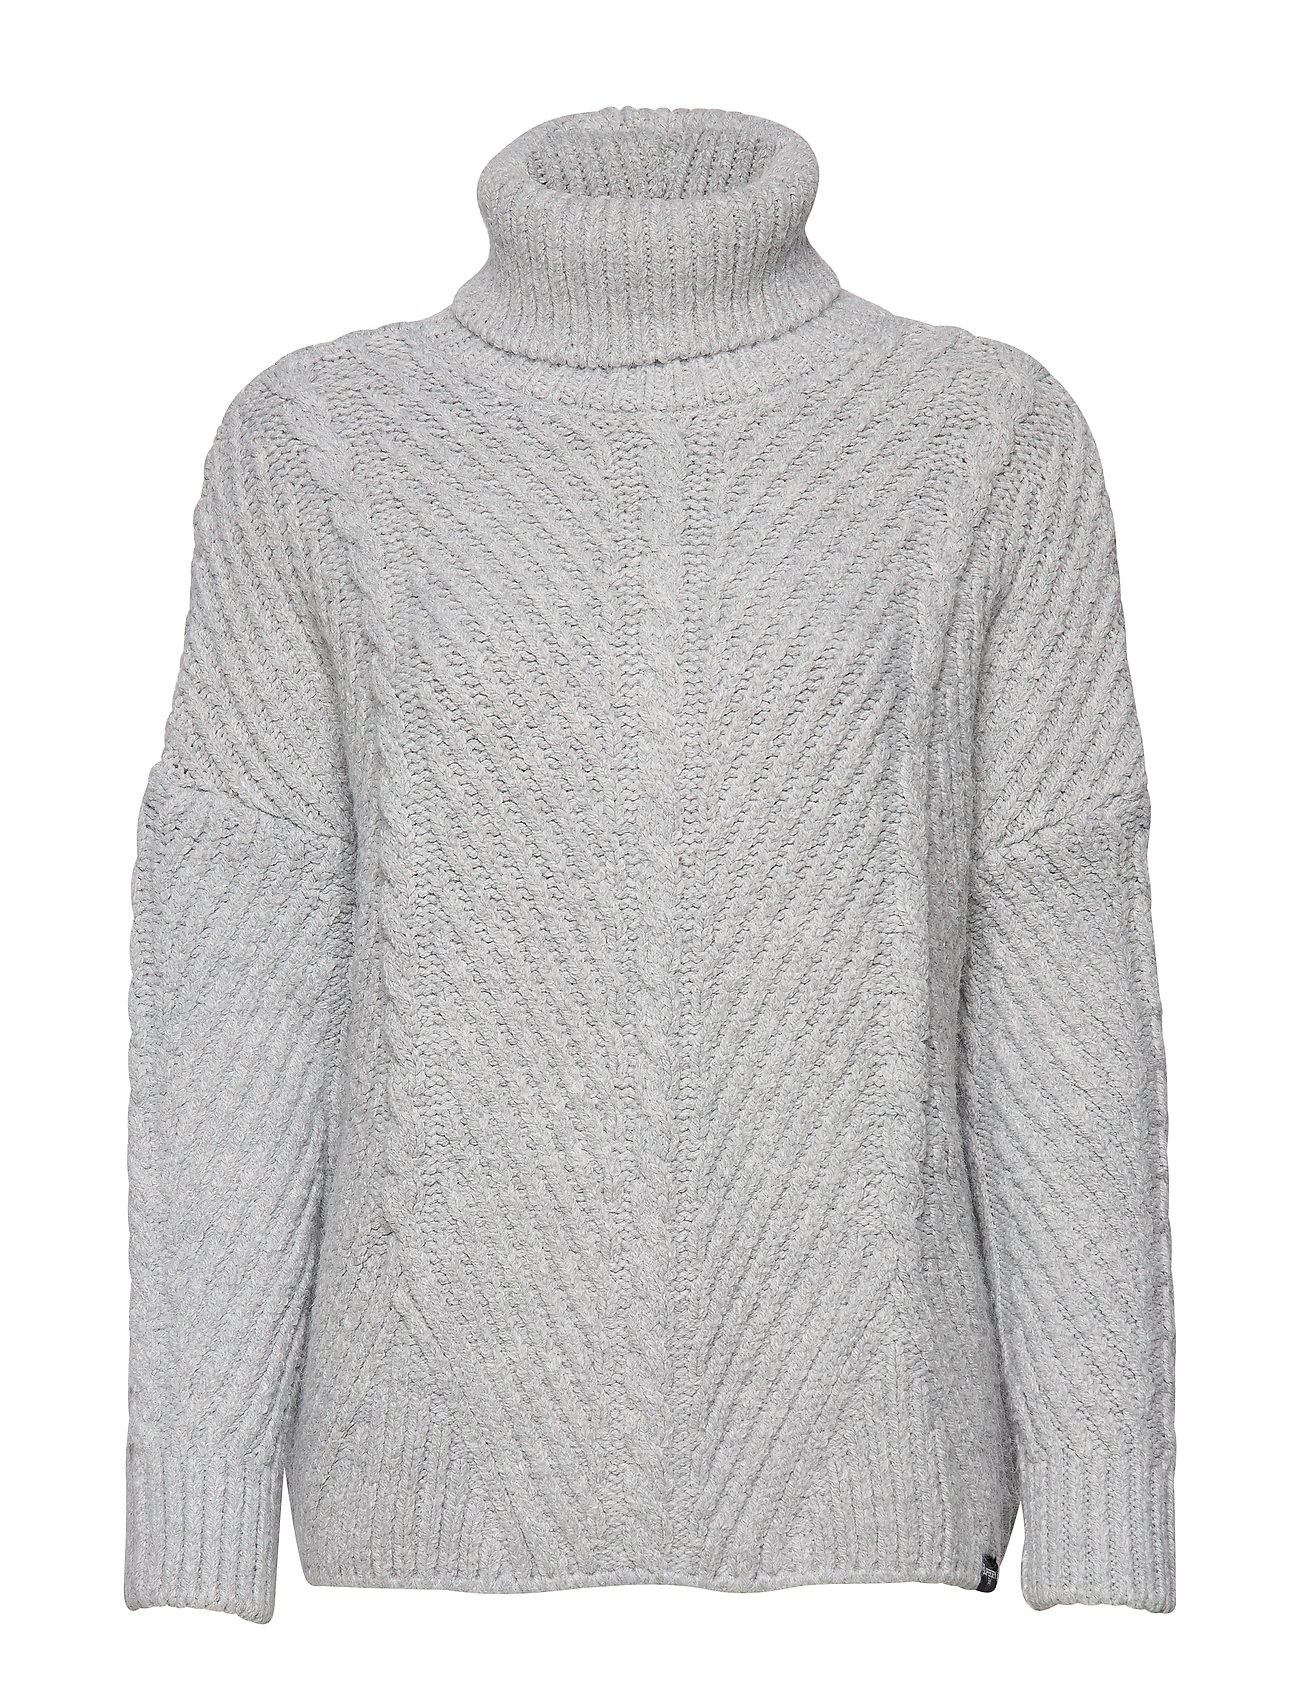 Superdry TORI CABLE CAPE KNIT - GREY MARL